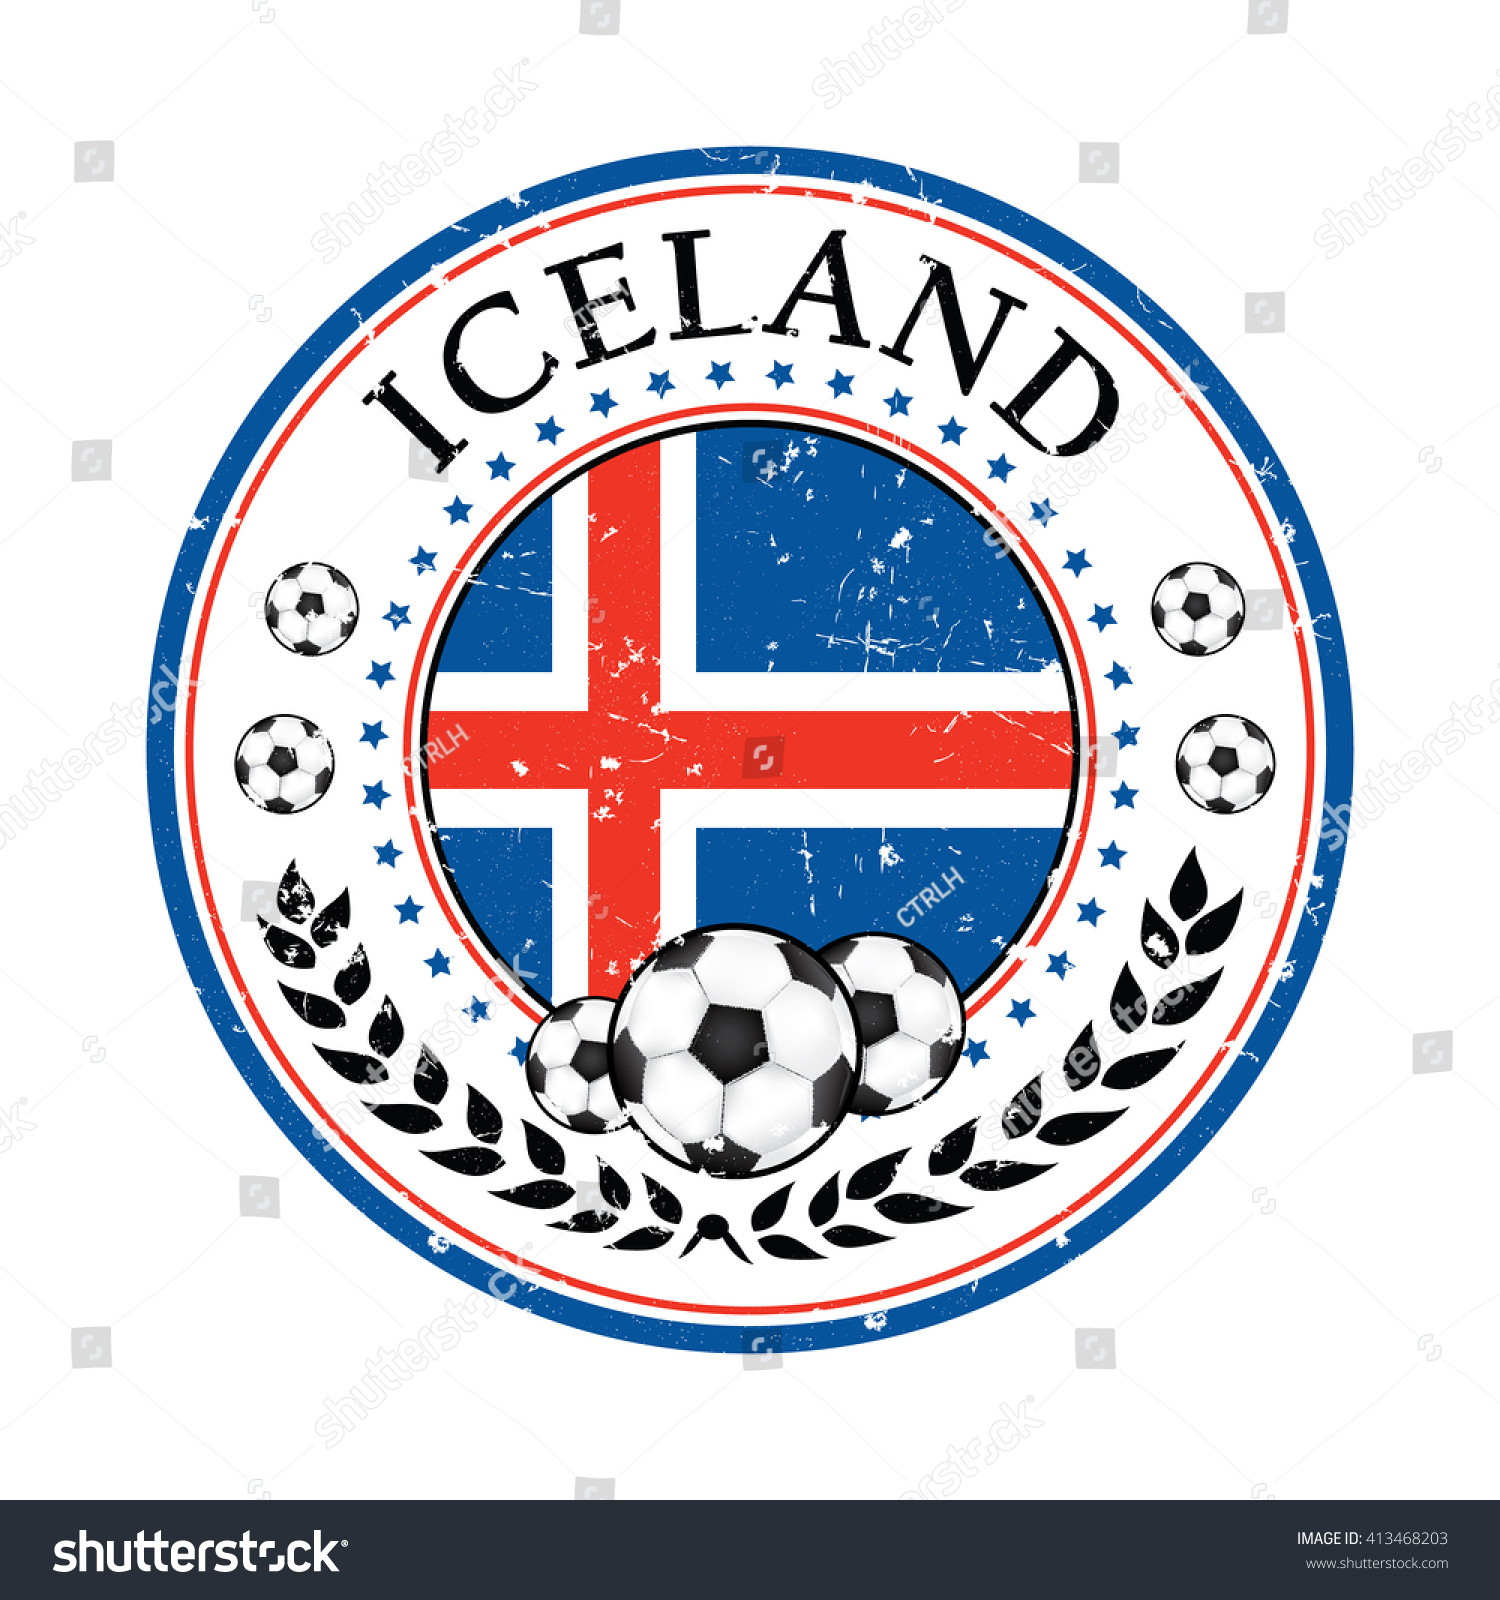 printable grunge iceland soccer label containing a soccer ball and the national flag print